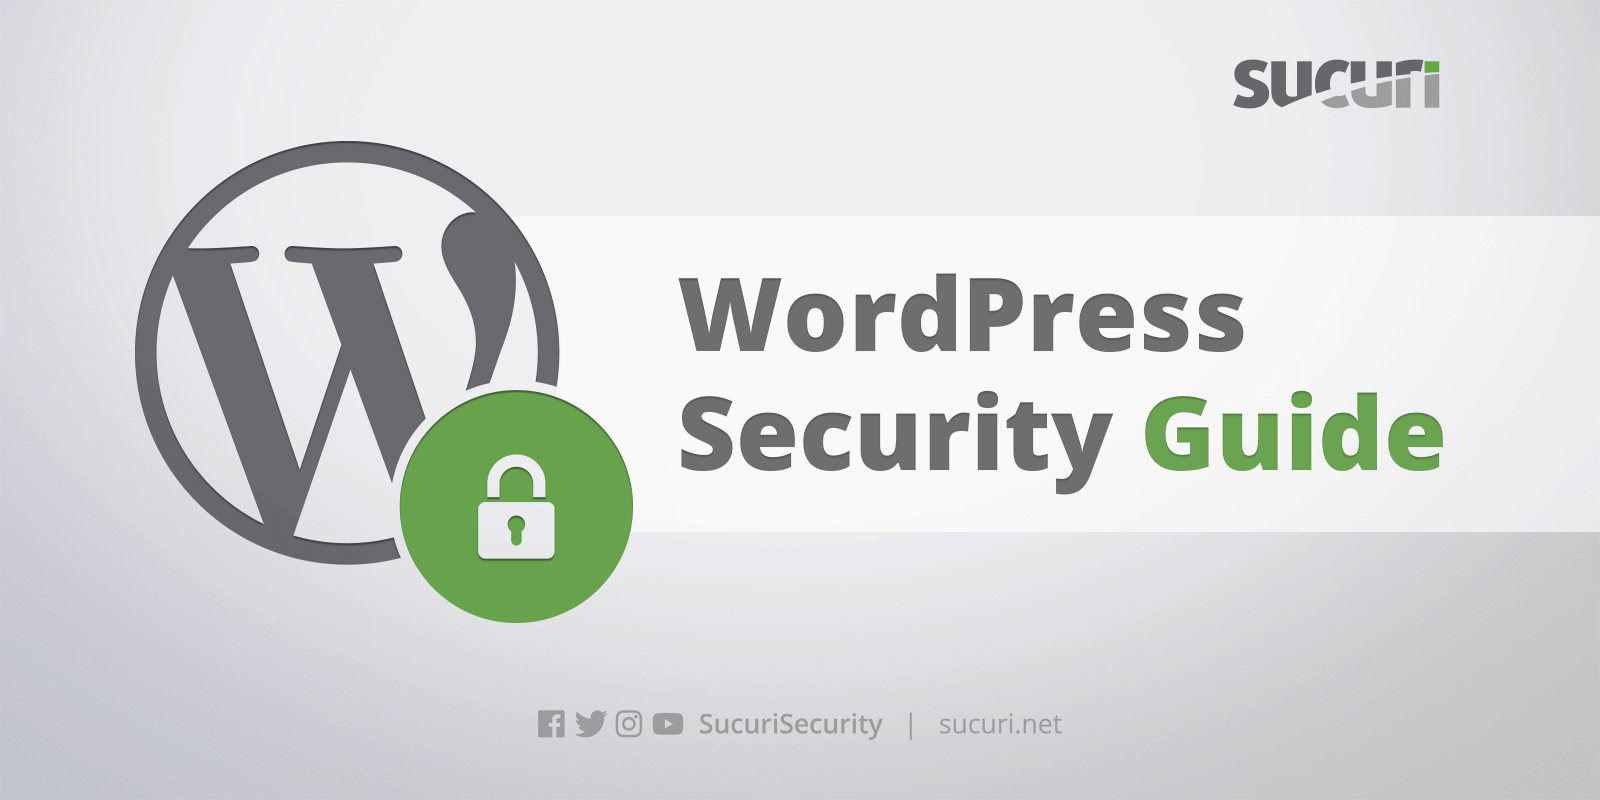 WordPress Security: How to Secure & Protect Your WP Site | Sucuri